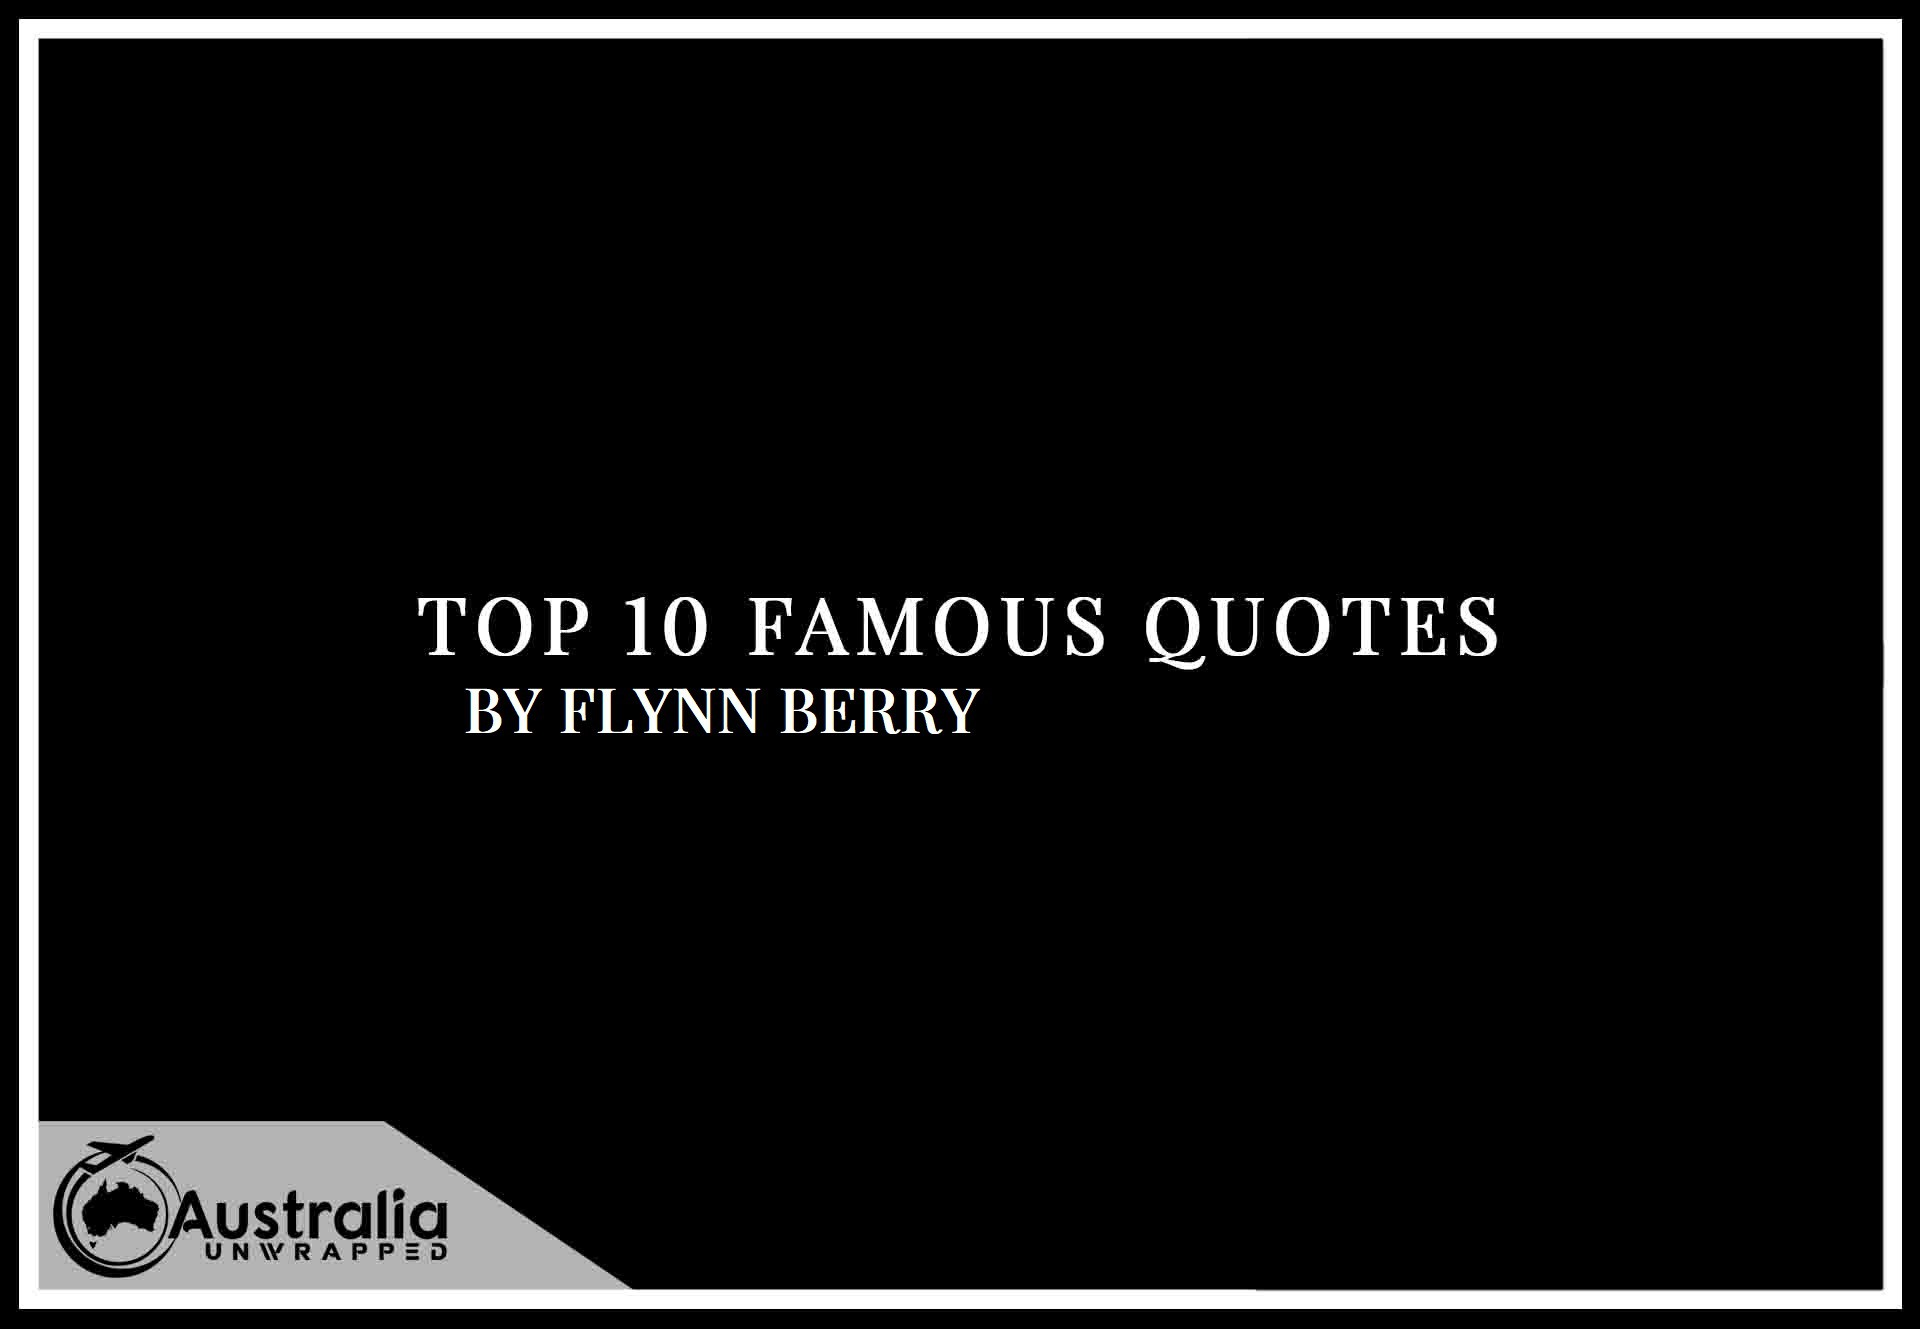 Top 10 Famous Quotes by Author Flynn Berry